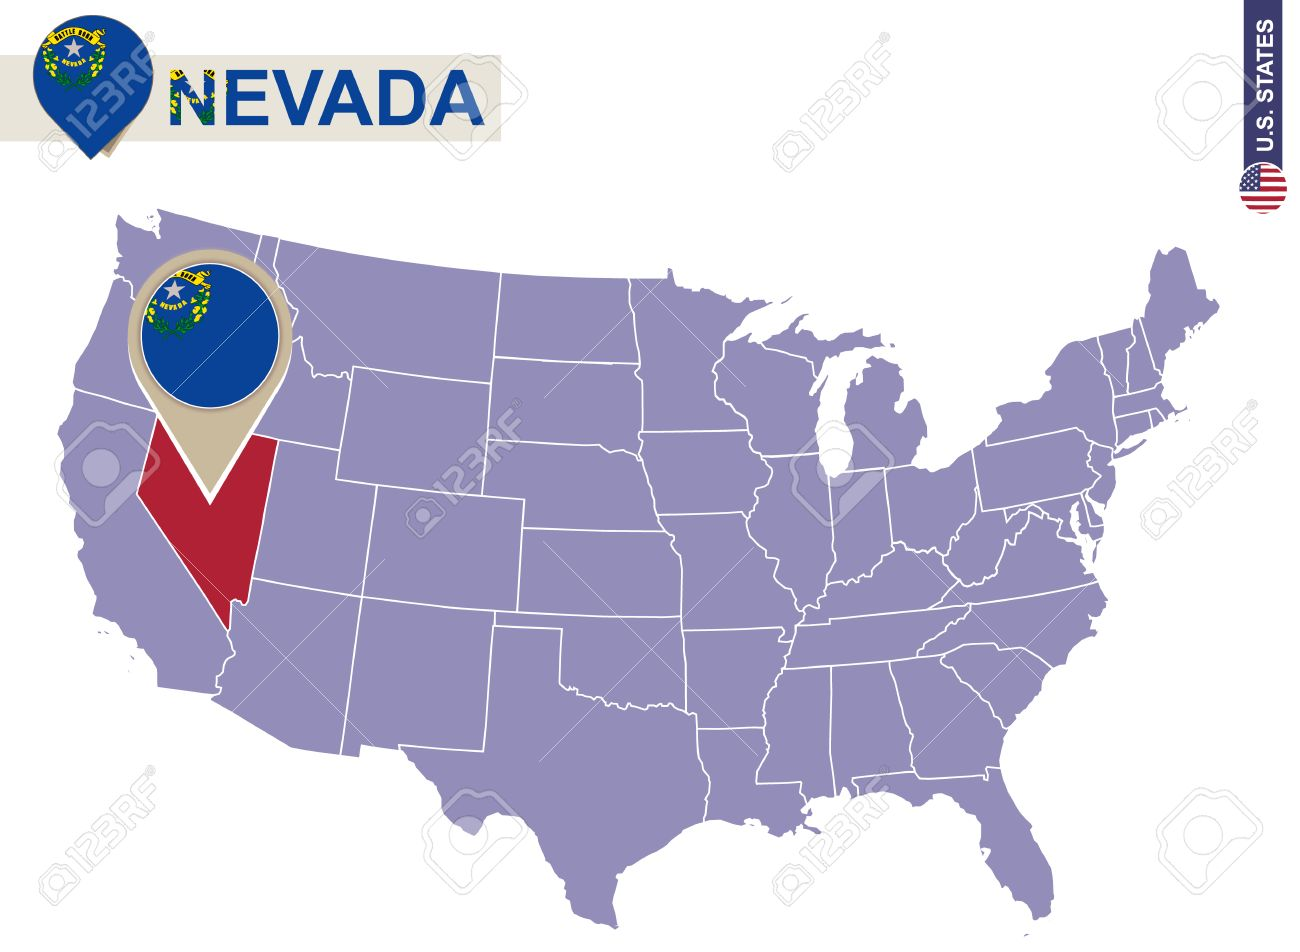 Nevada State On USA Map Nevada Flag And Map US States Royalty - Nevada on us map